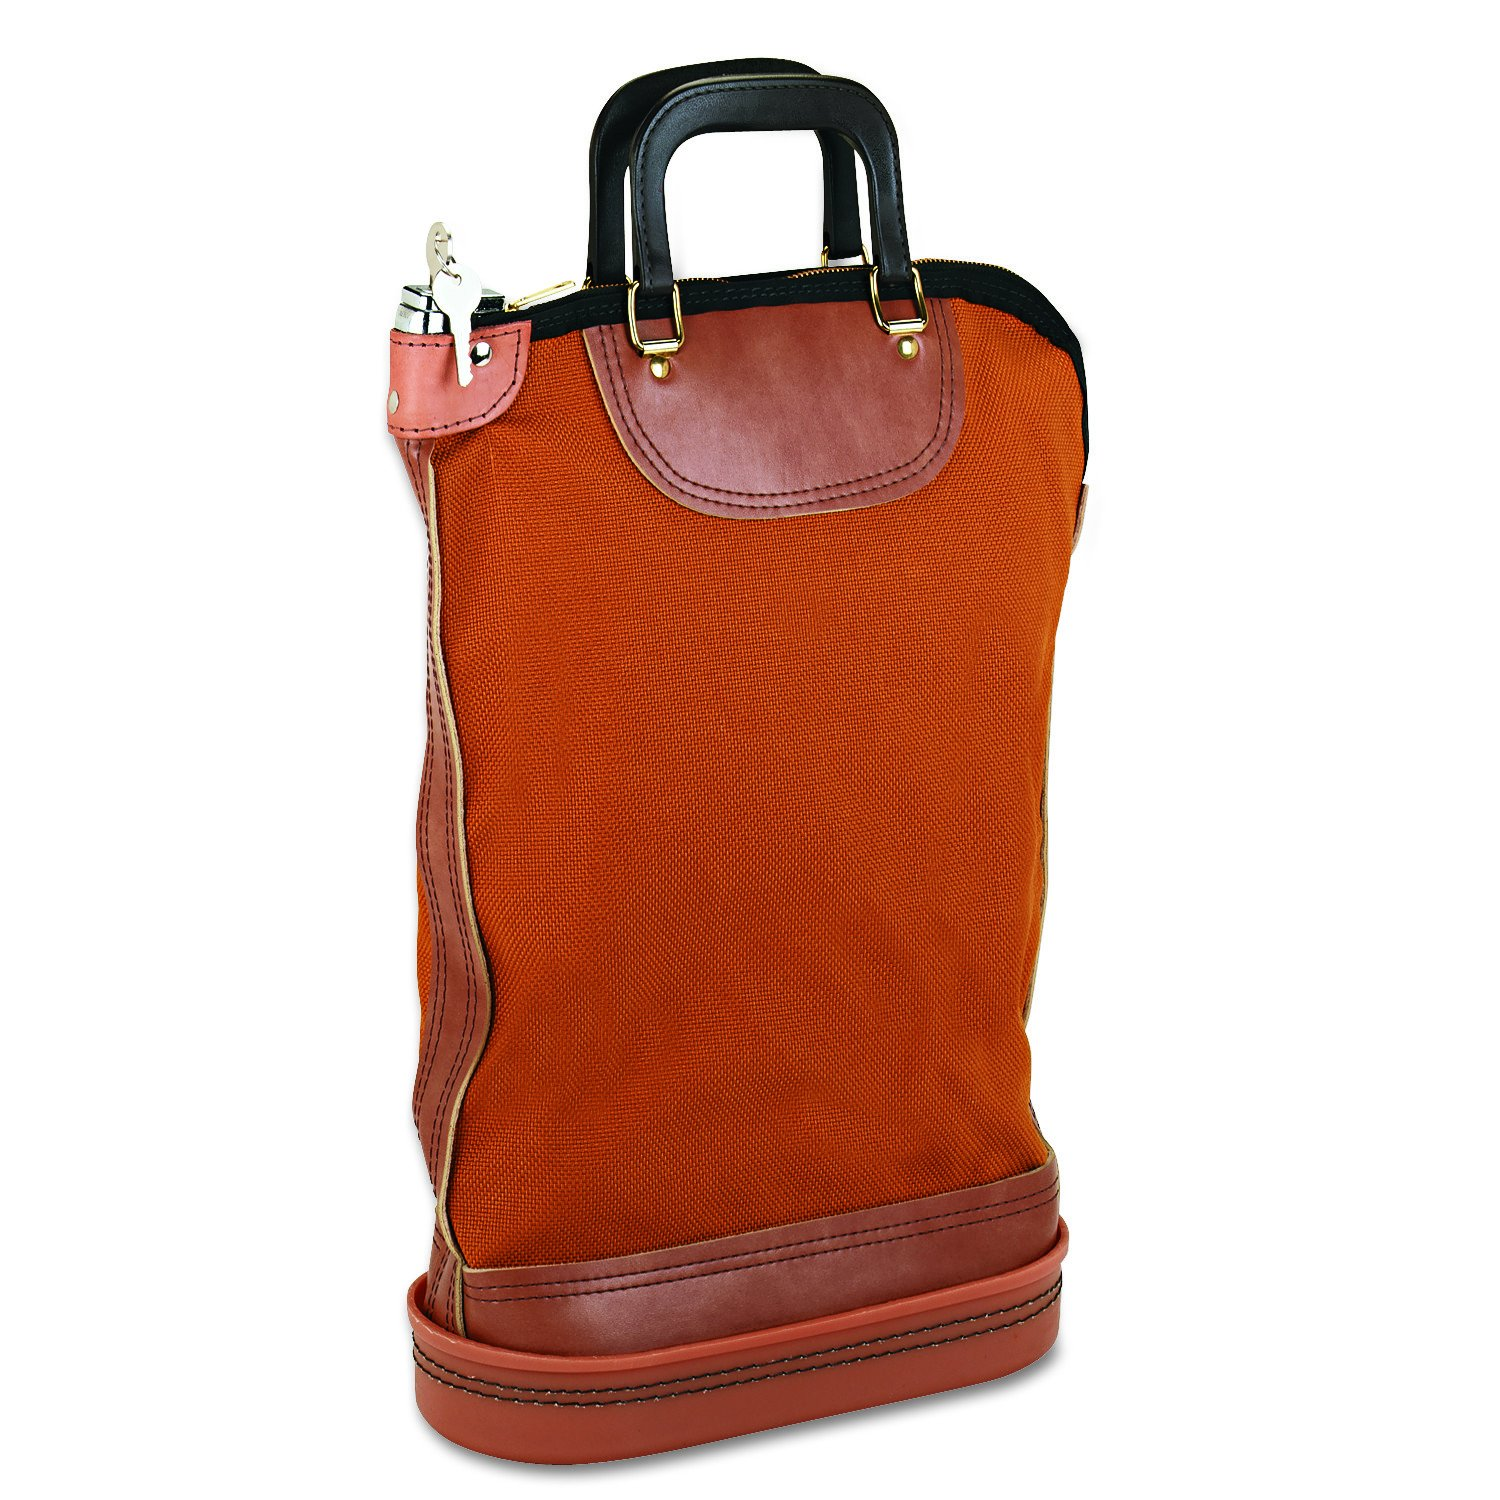 PM Company Regulation Post Office Security Mail Bag, Zipper Lock, Gold, Brown (04644)